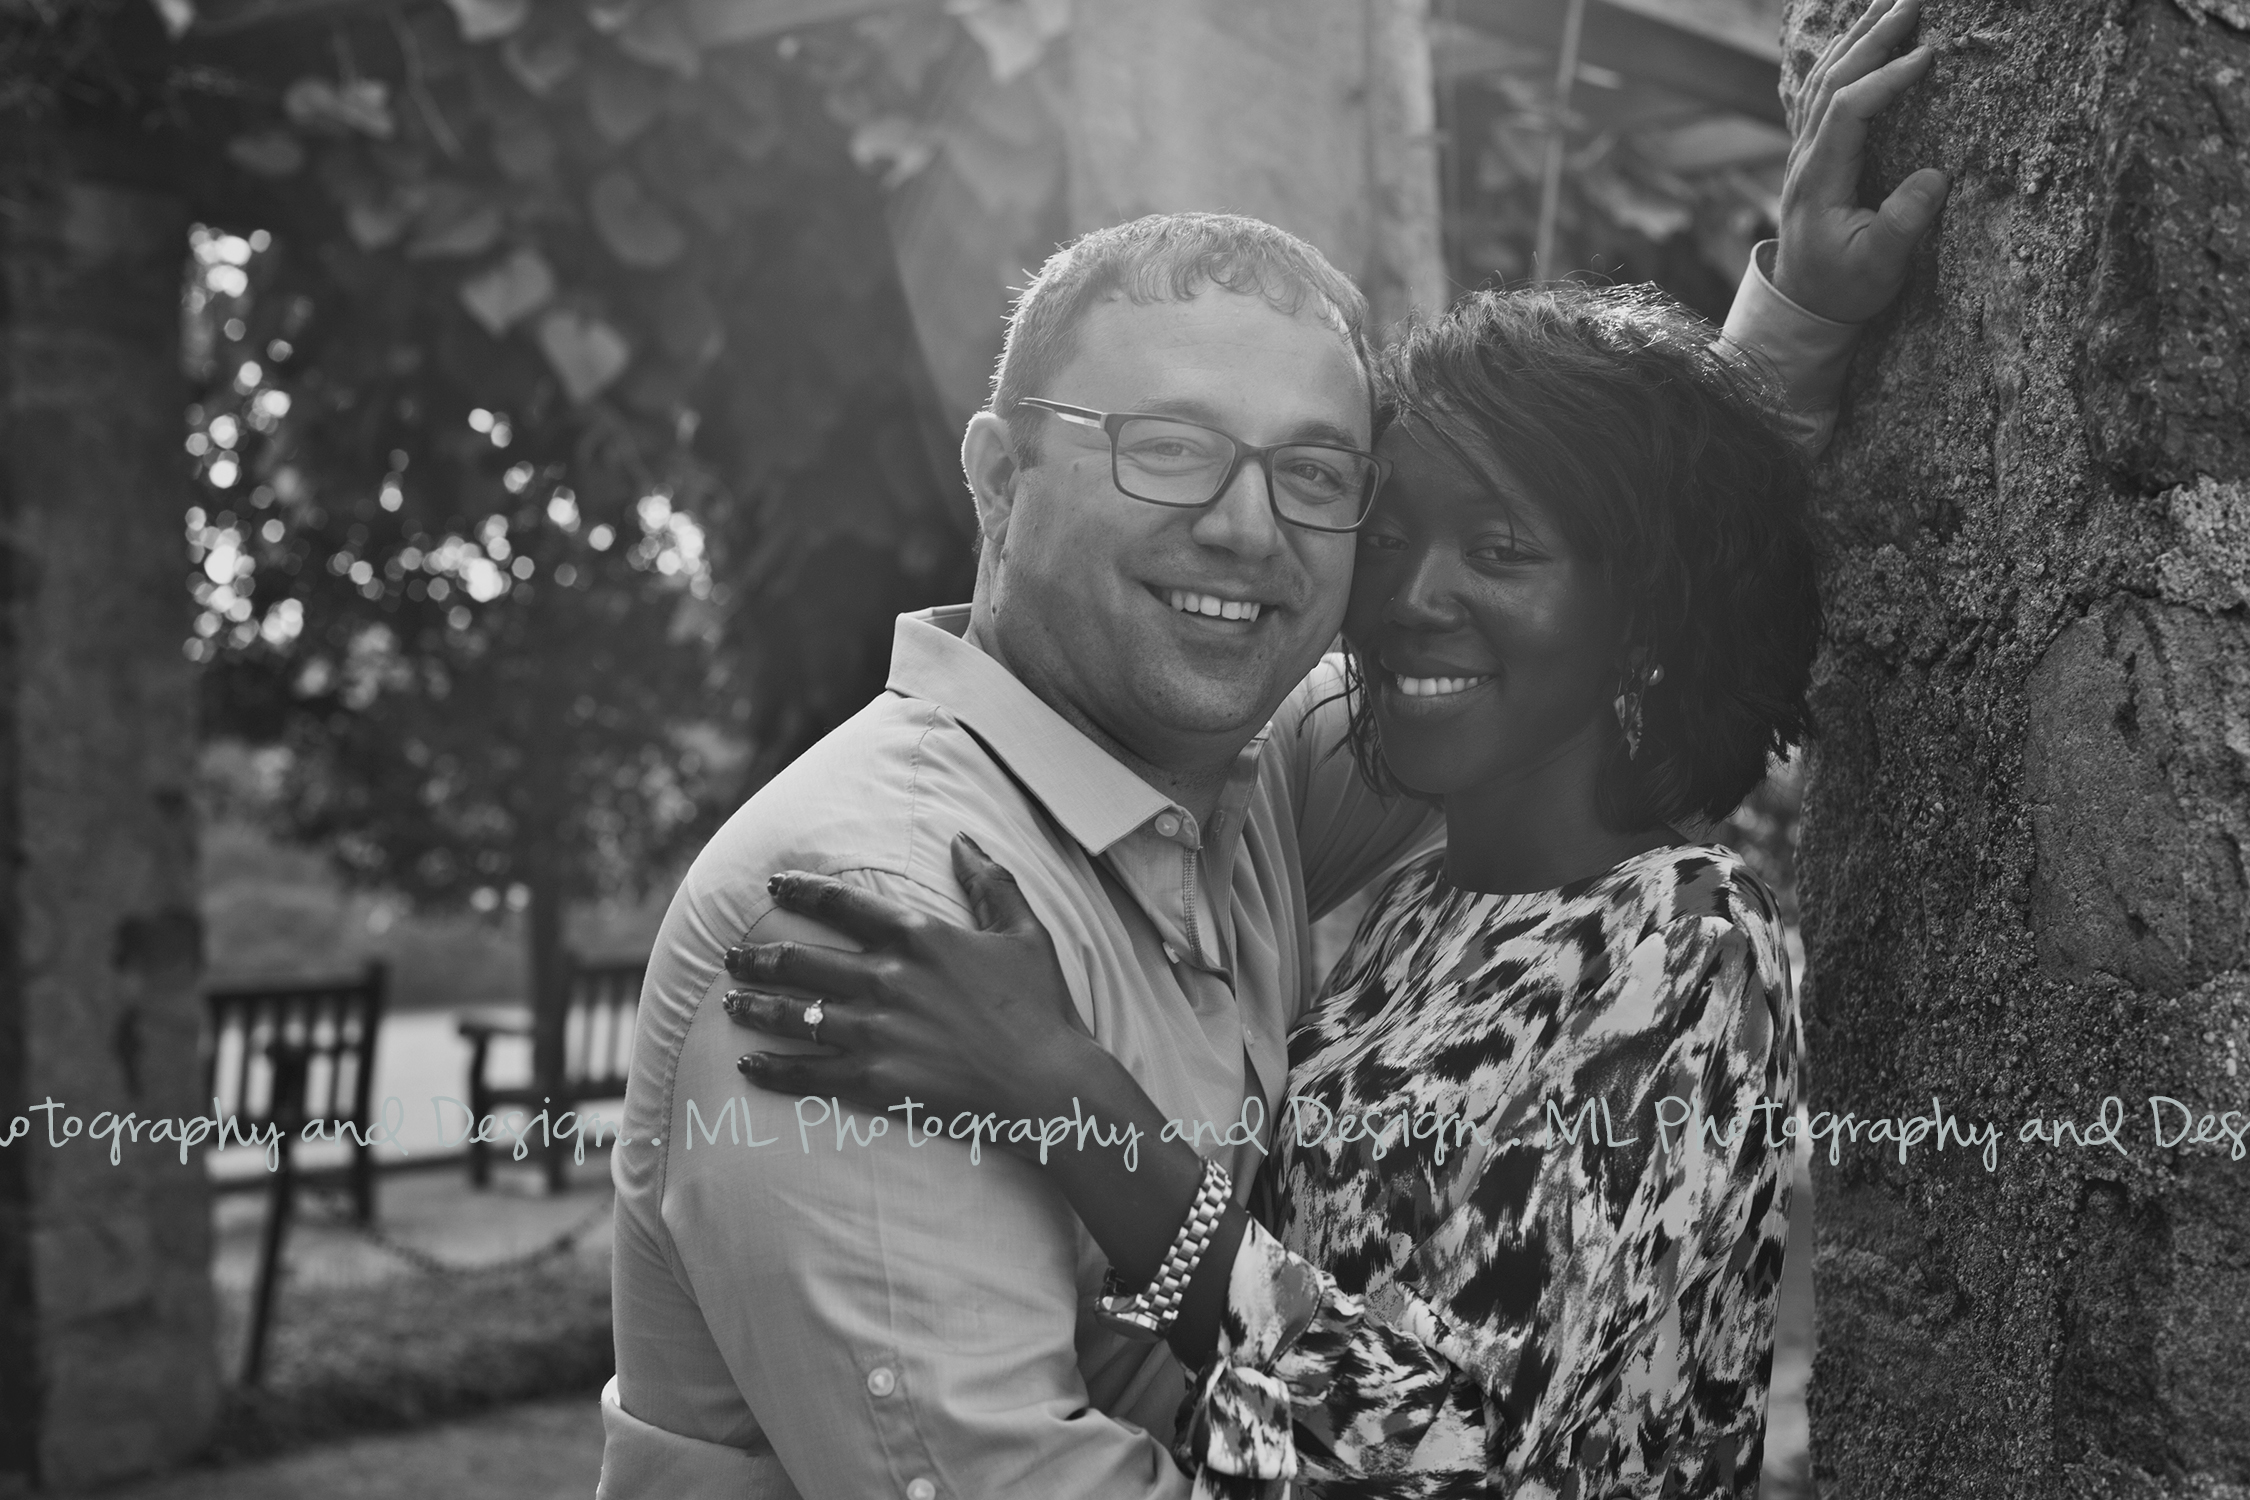 Barnes_Engagement-92.jpg